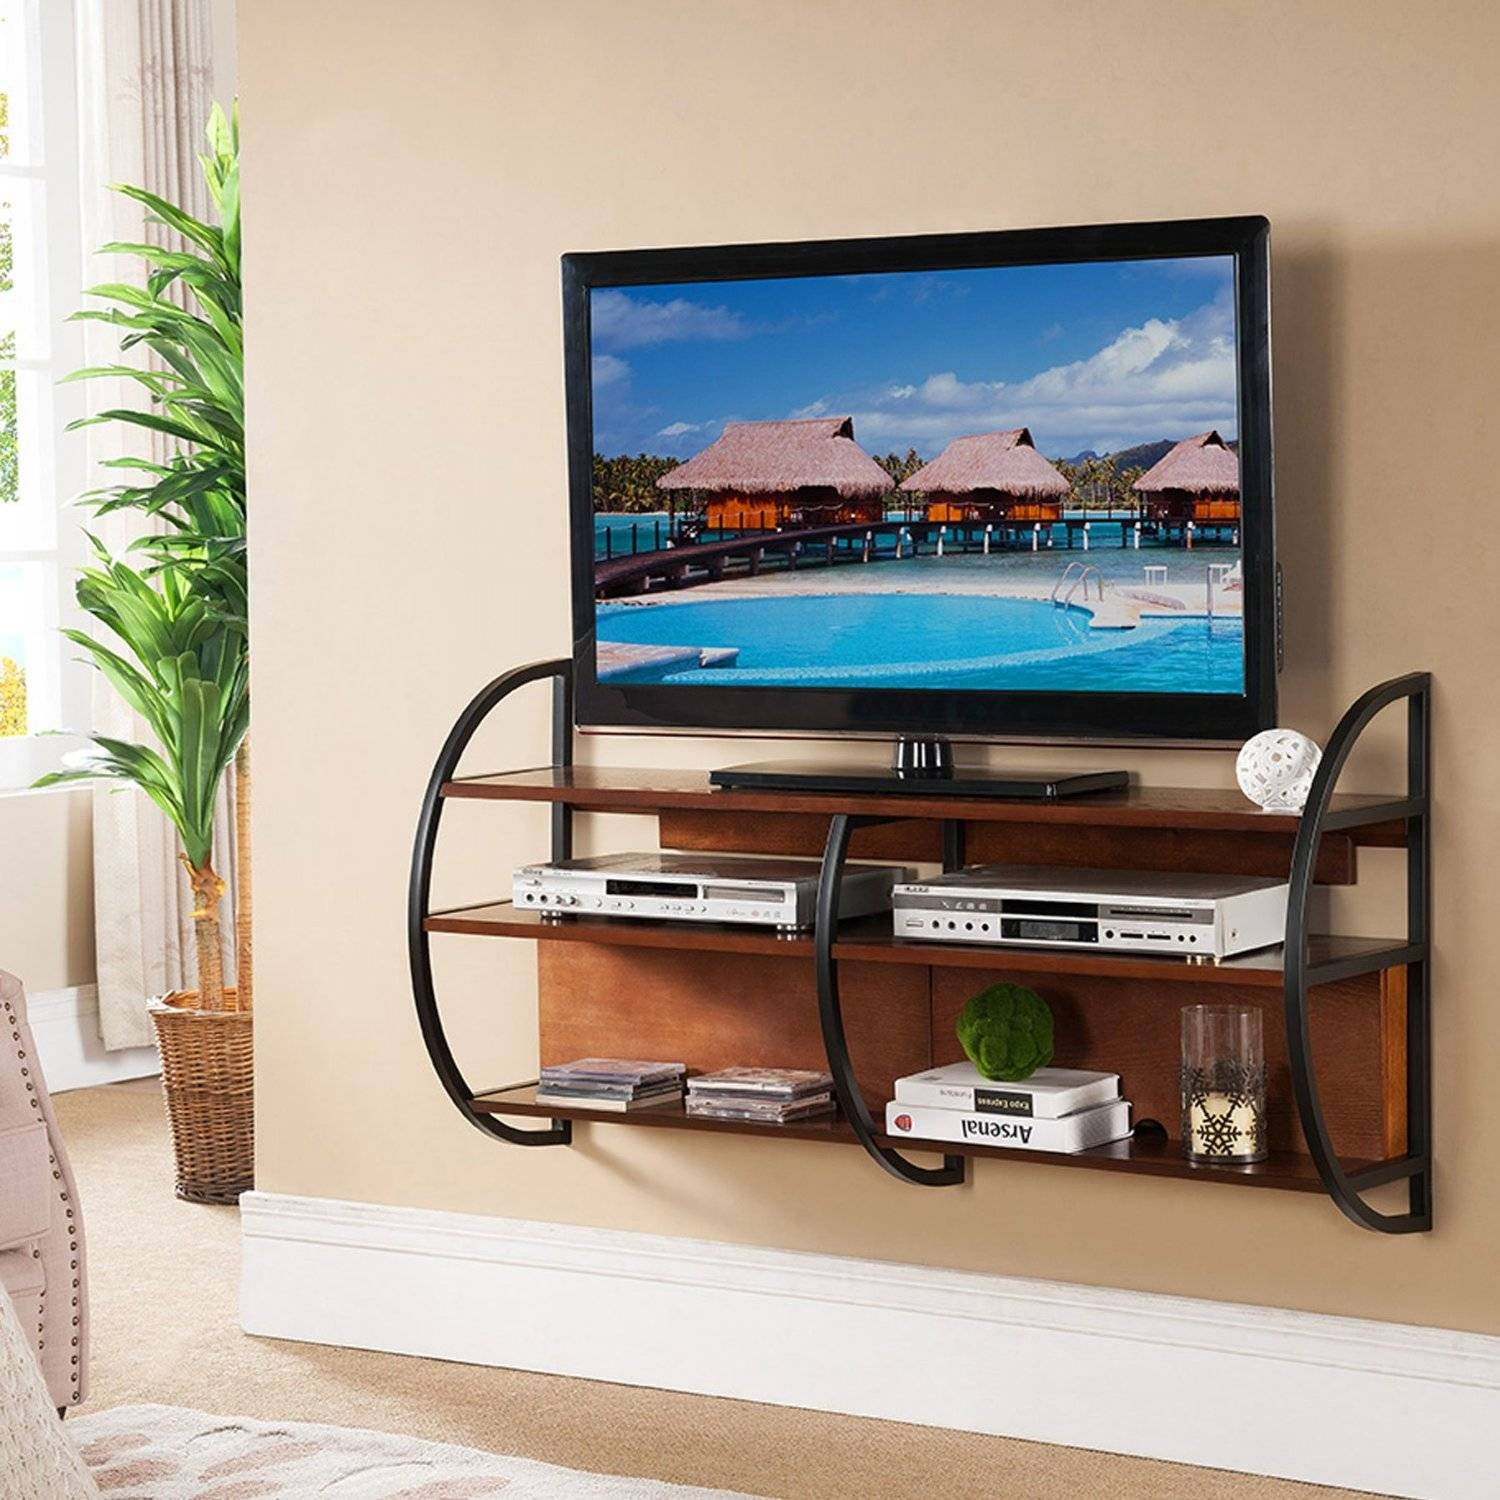 2018 best of tv stands for small spaces for Tv room ideas for small spaces